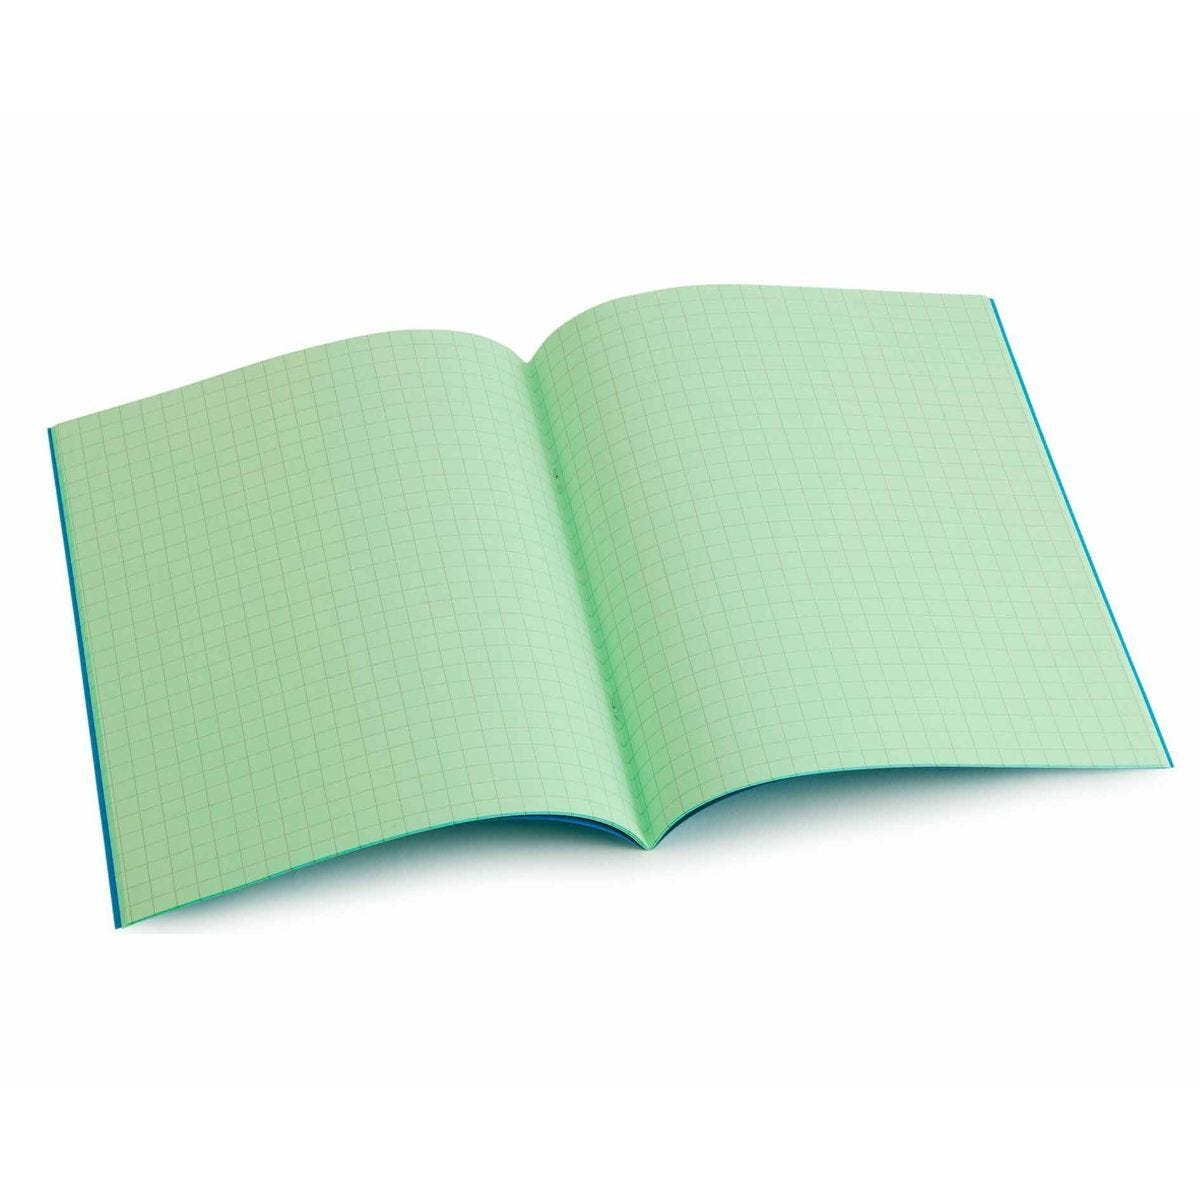 Tinted Exercise Book Standard 7x9 Squared 7.5mm Leaf Green